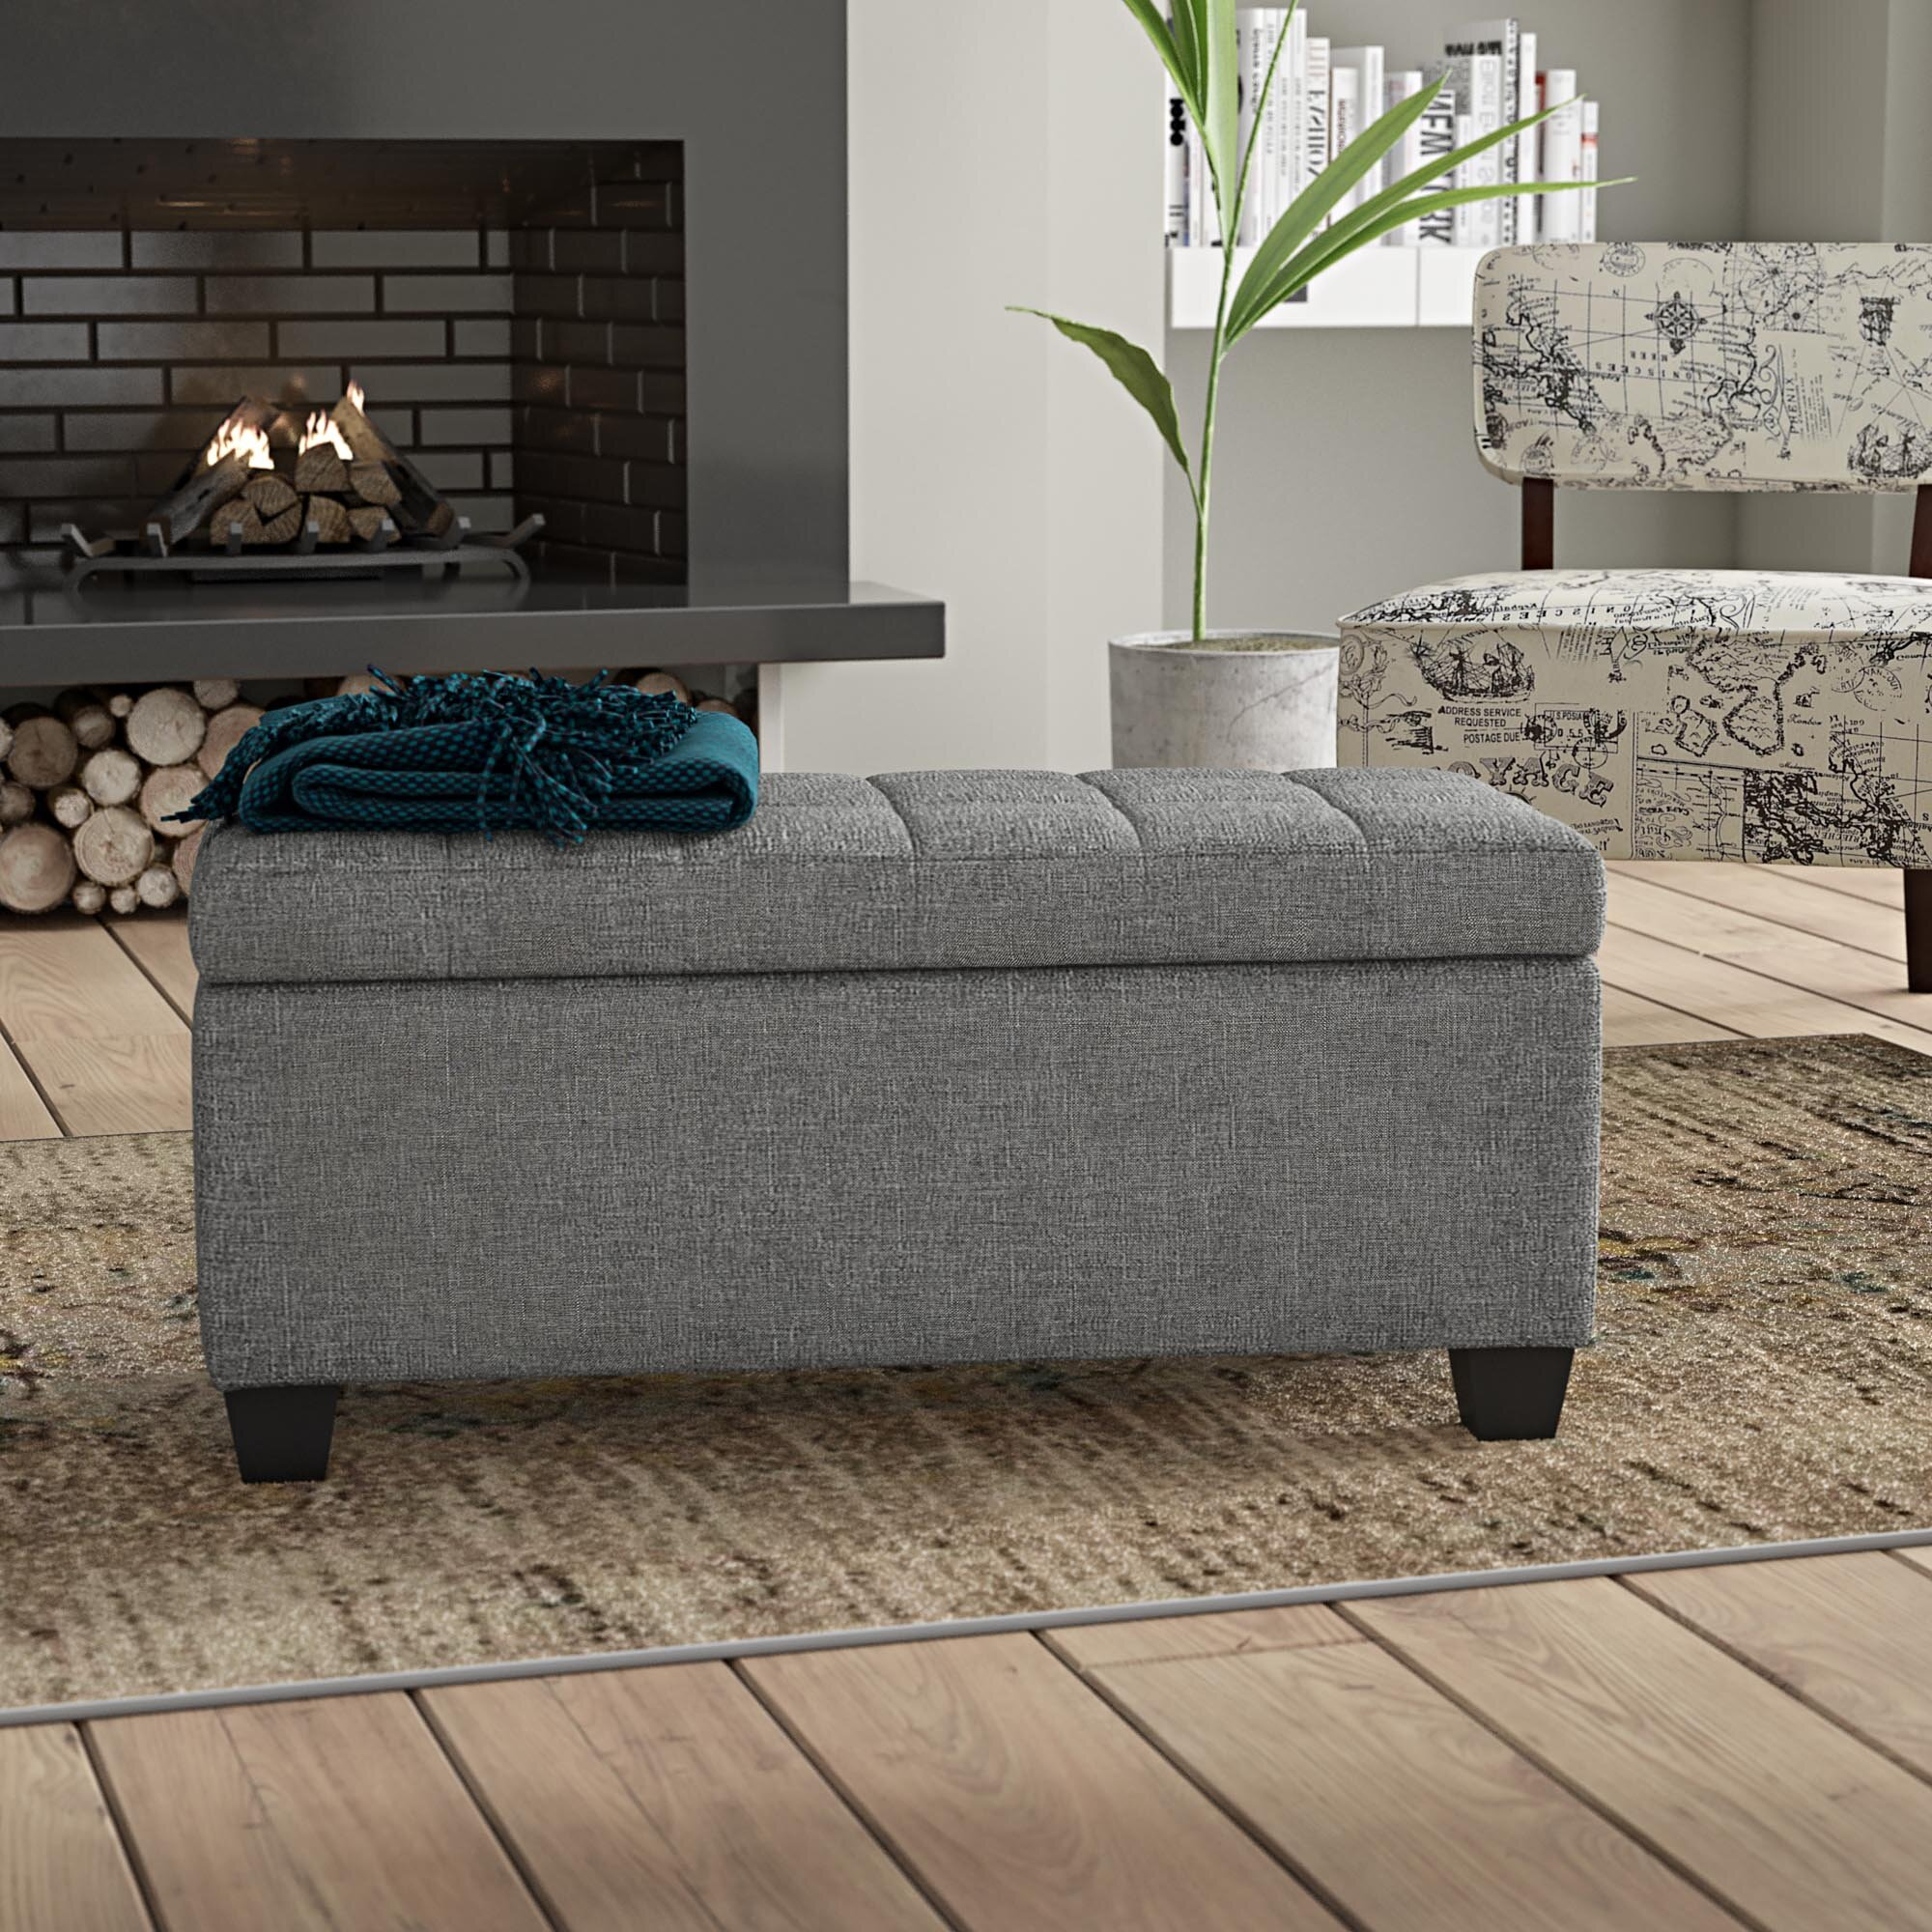 Peachy Pimentel Fabric Tufted Storage Ottoman Gmtry Best Dining Table And Chair Ideas Images Gmtryco